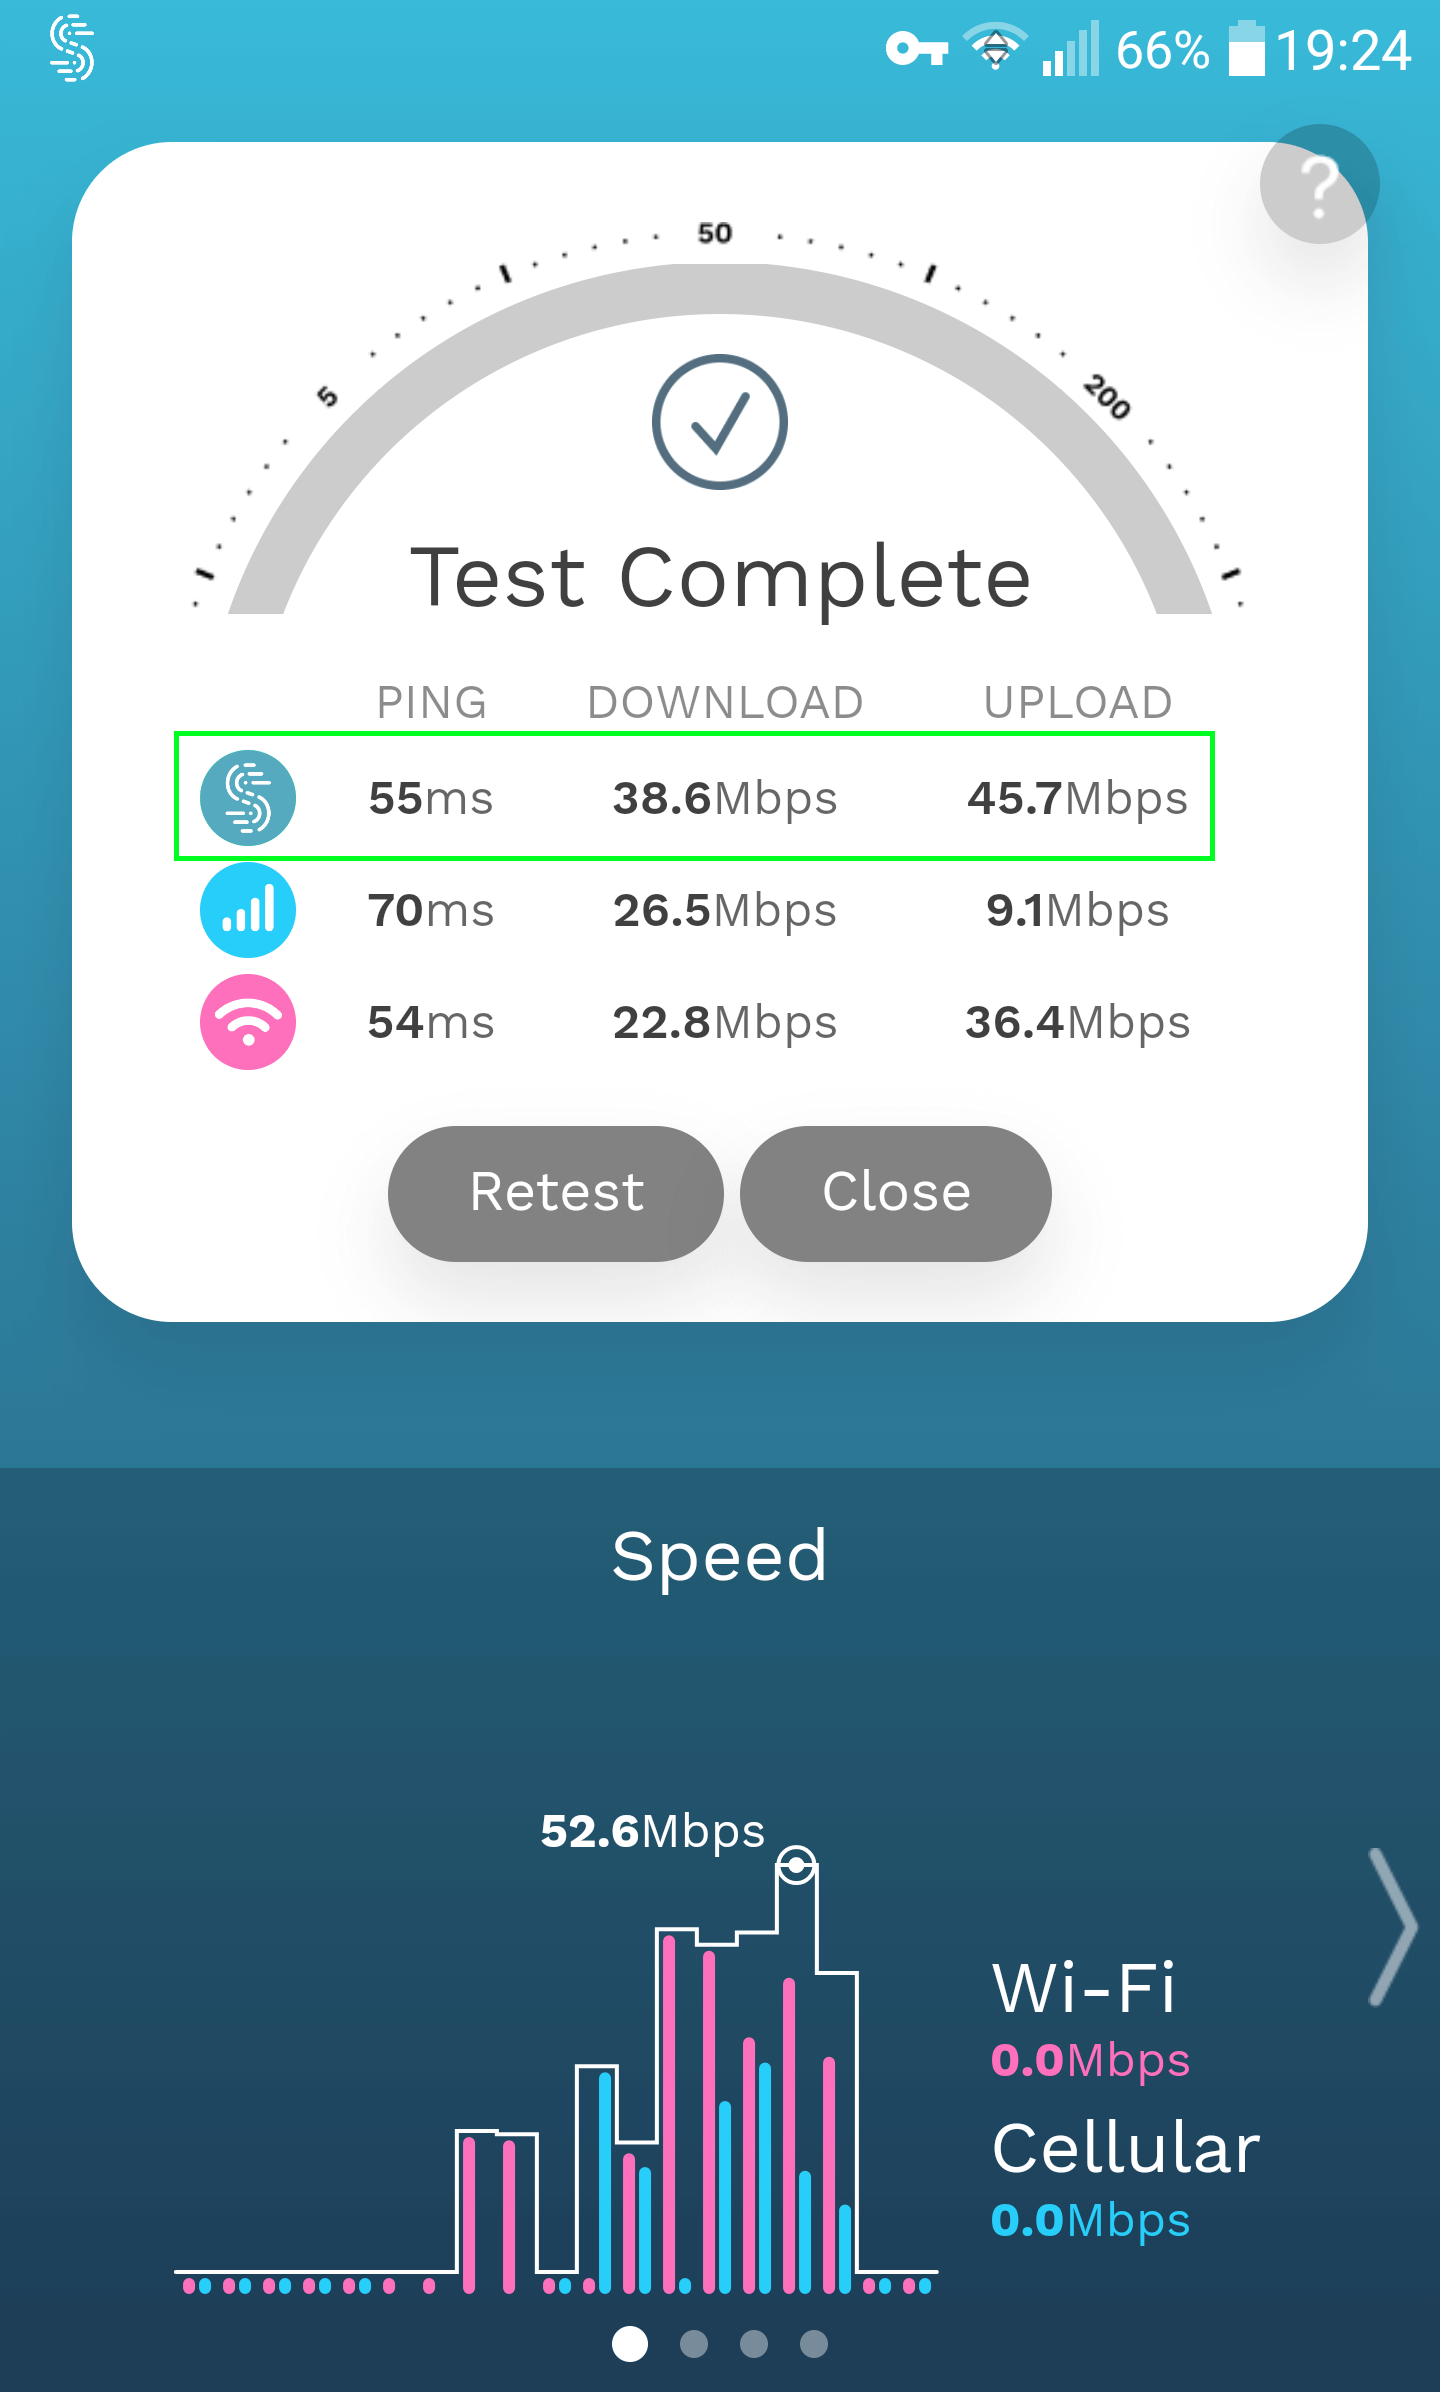 How Fast Is My VPN? Is It Fast Enough? Test It Yourself and Find Out